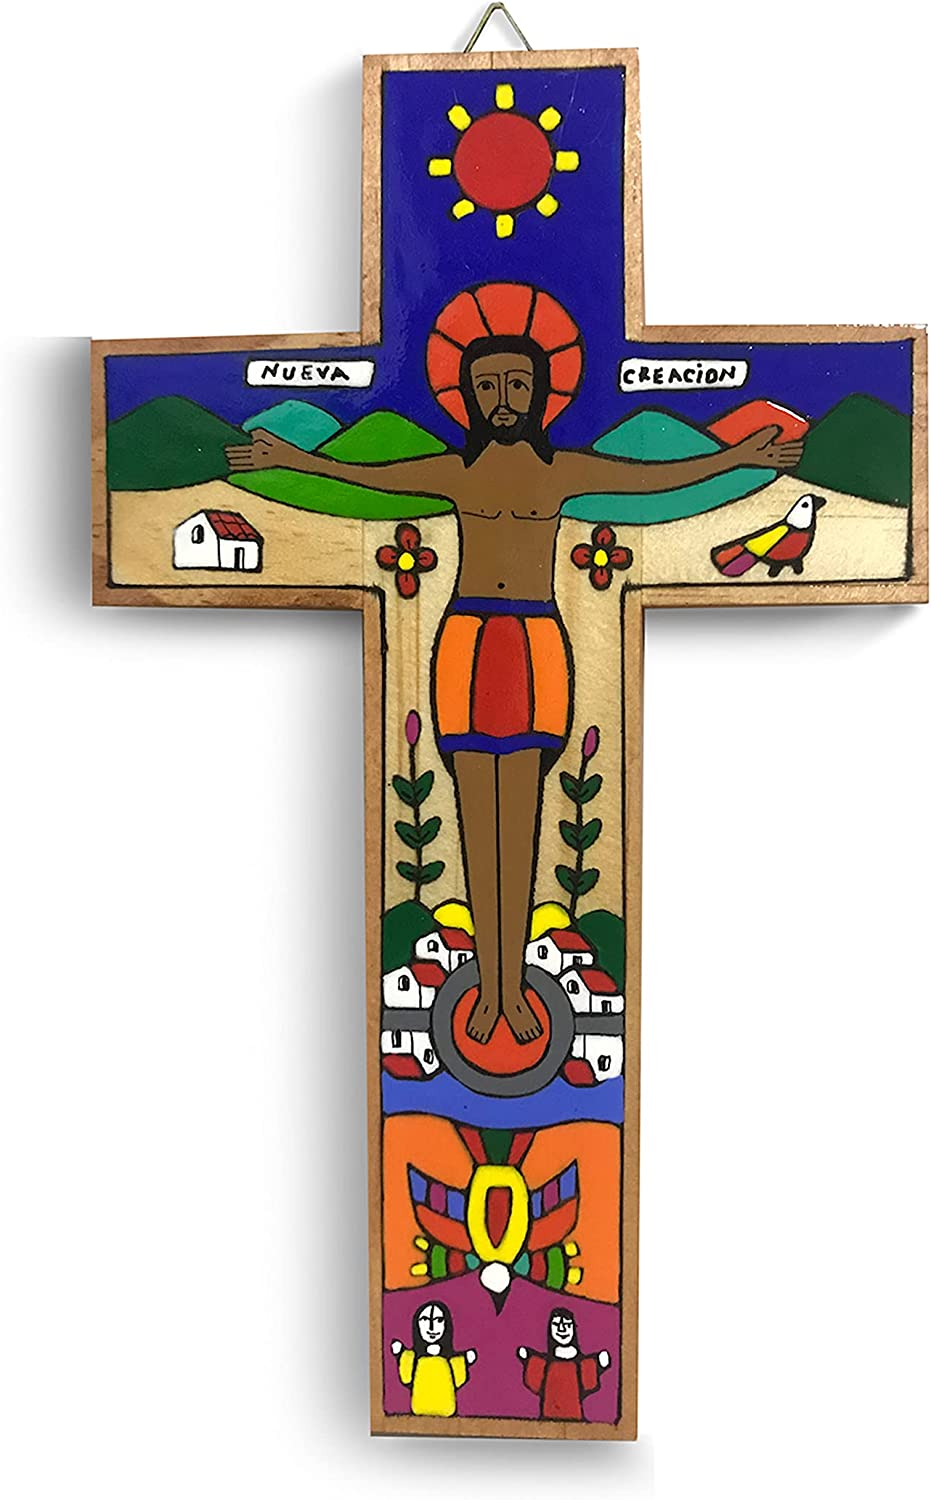 Crucifix Wall Cross Catholic Crosses For Wall Wooden Cross Wall Decor Wall Crosses For Home Decor Religious Wall Decor Cross For Wall Christian Gifts For Mom Cross Decor Jesus Decor 5 x 8 inches